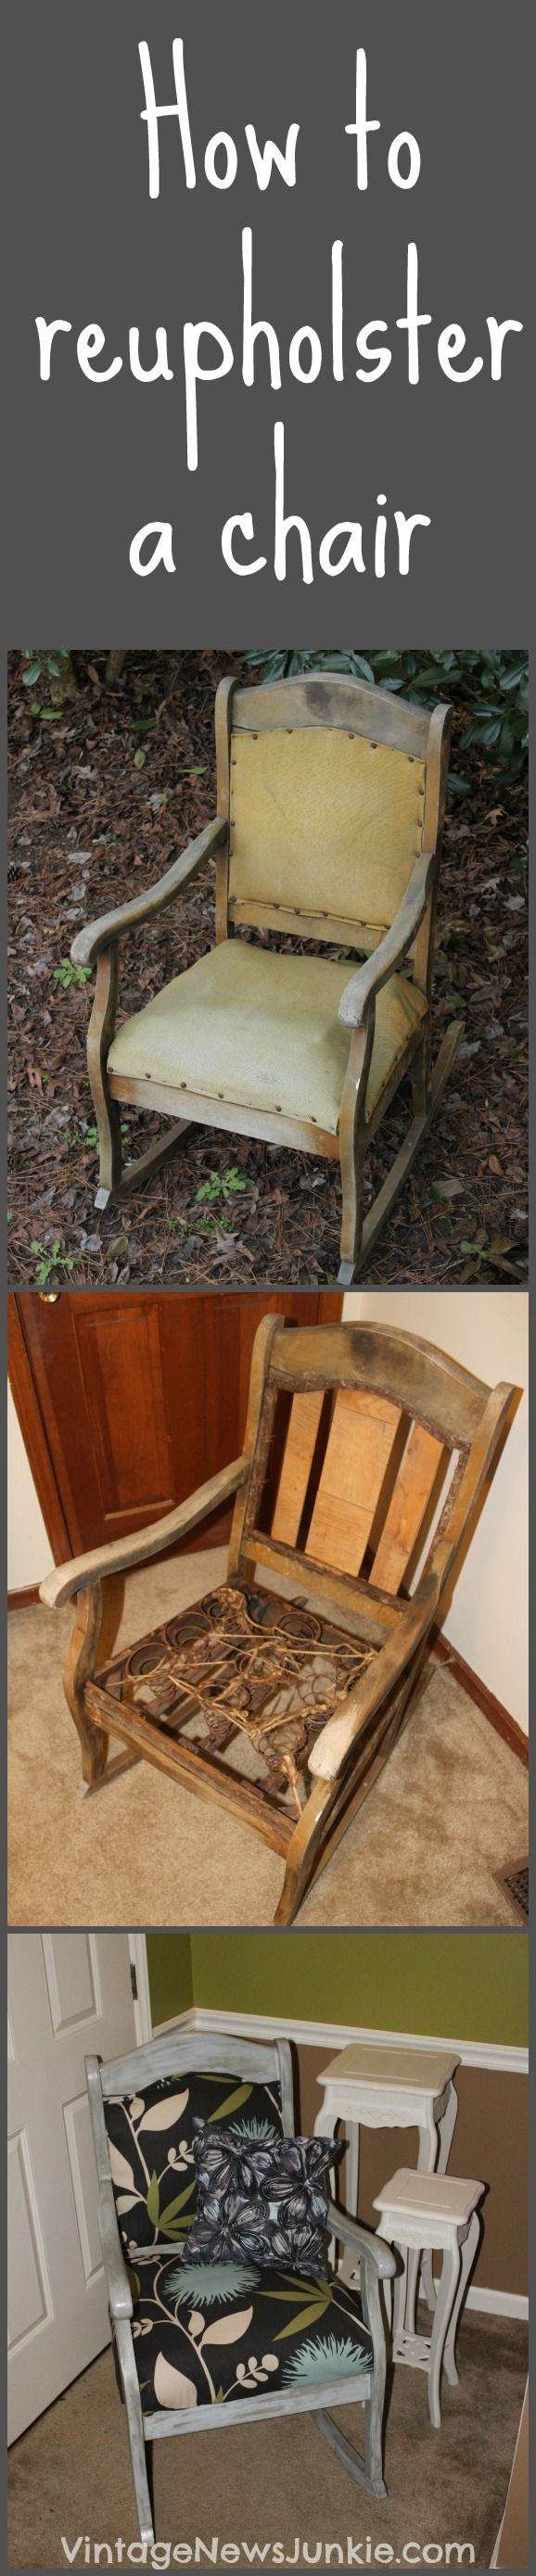 How to Reupholster a Chair Tutorial {Vintage News Junkie}